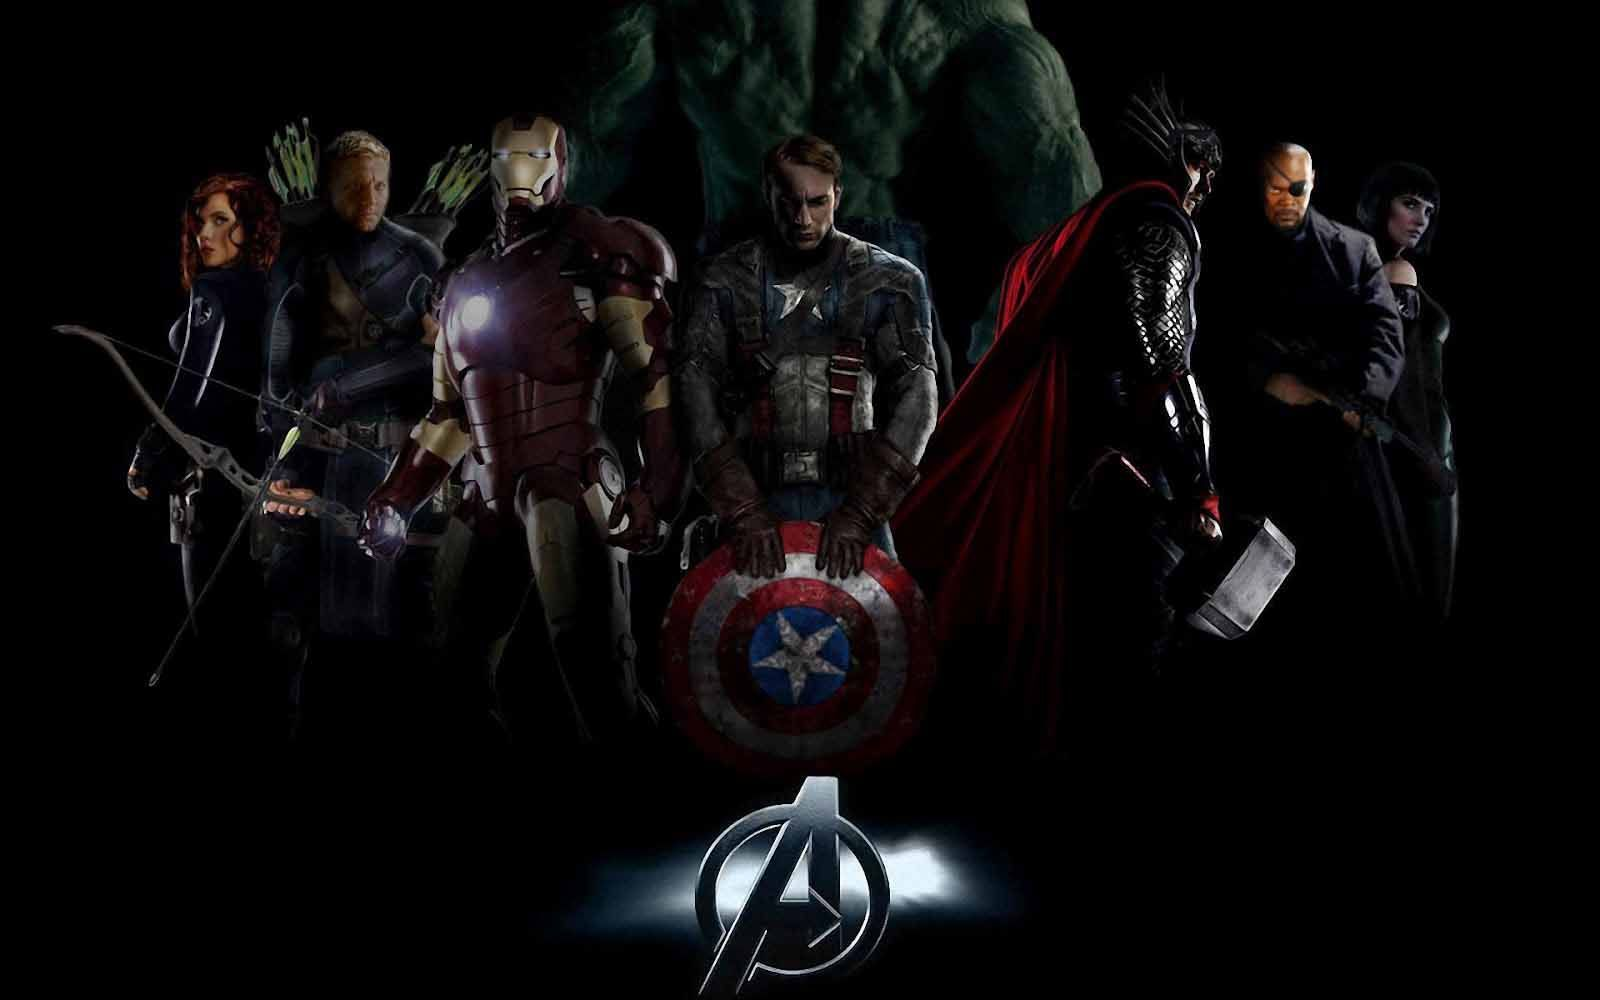 Avengers Laptop Wallpapers Top Free Avengers Laptop Backgrounds Wallpaperaccess In 2020 Avengers Wallpaper Avengers Pictures Avengers Cartoon